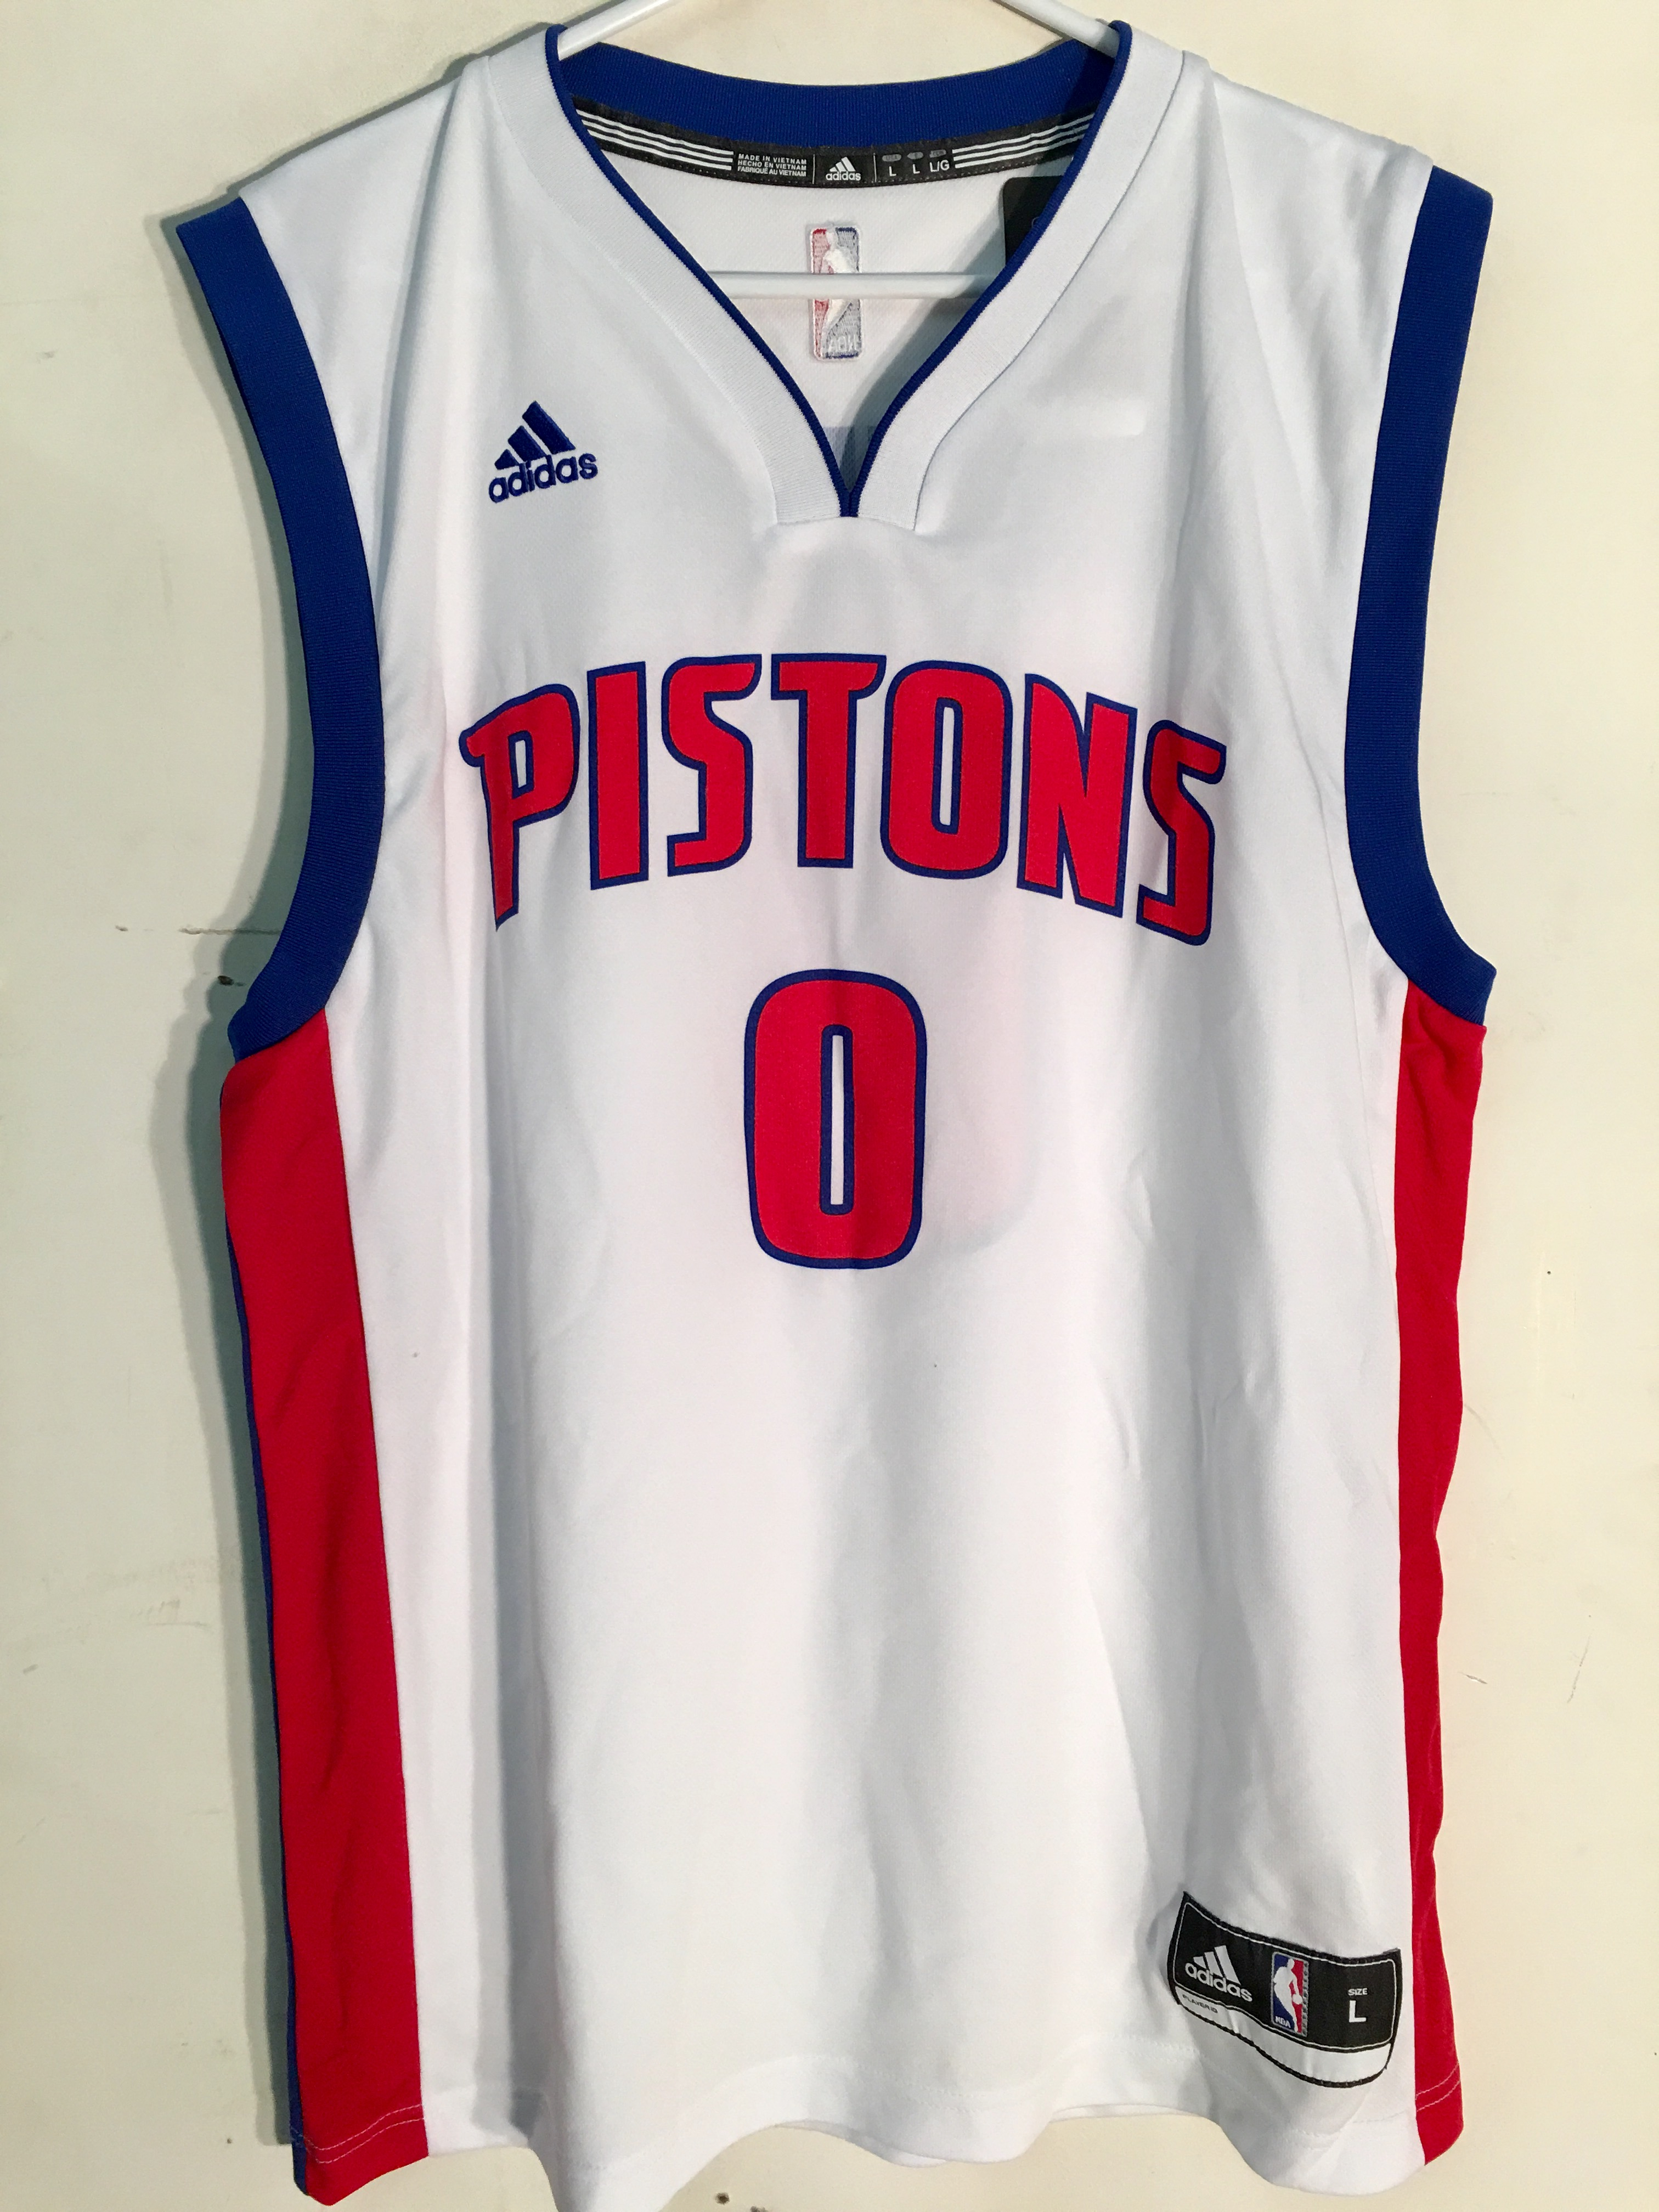 Details about Adidas NBA Jersey Detroit Pistons Andre Drummond White sz XL 966daaba3